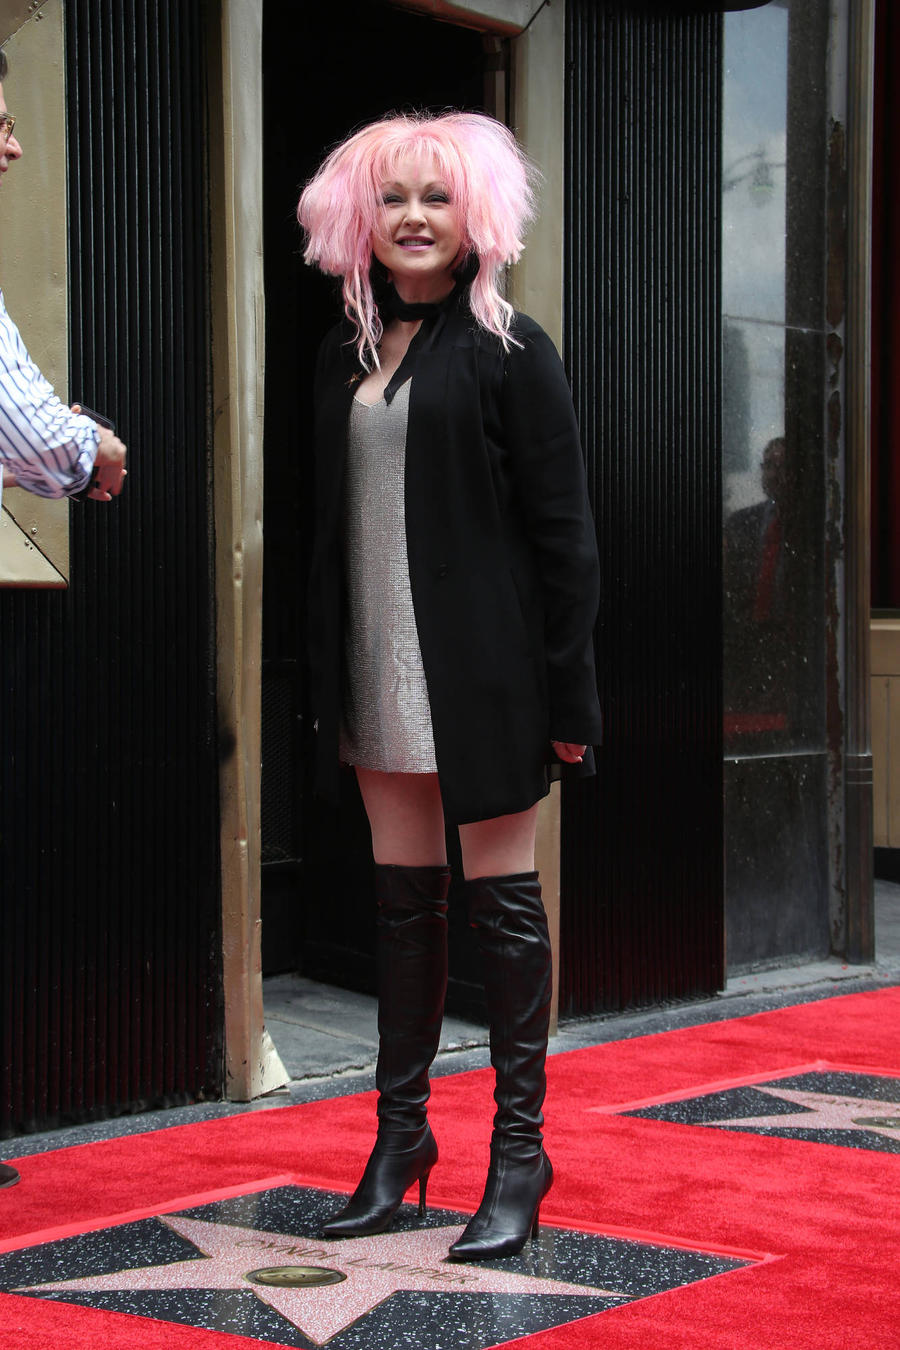 Cyndi Lauper Requests Unisex Bathroom On Tour Rider